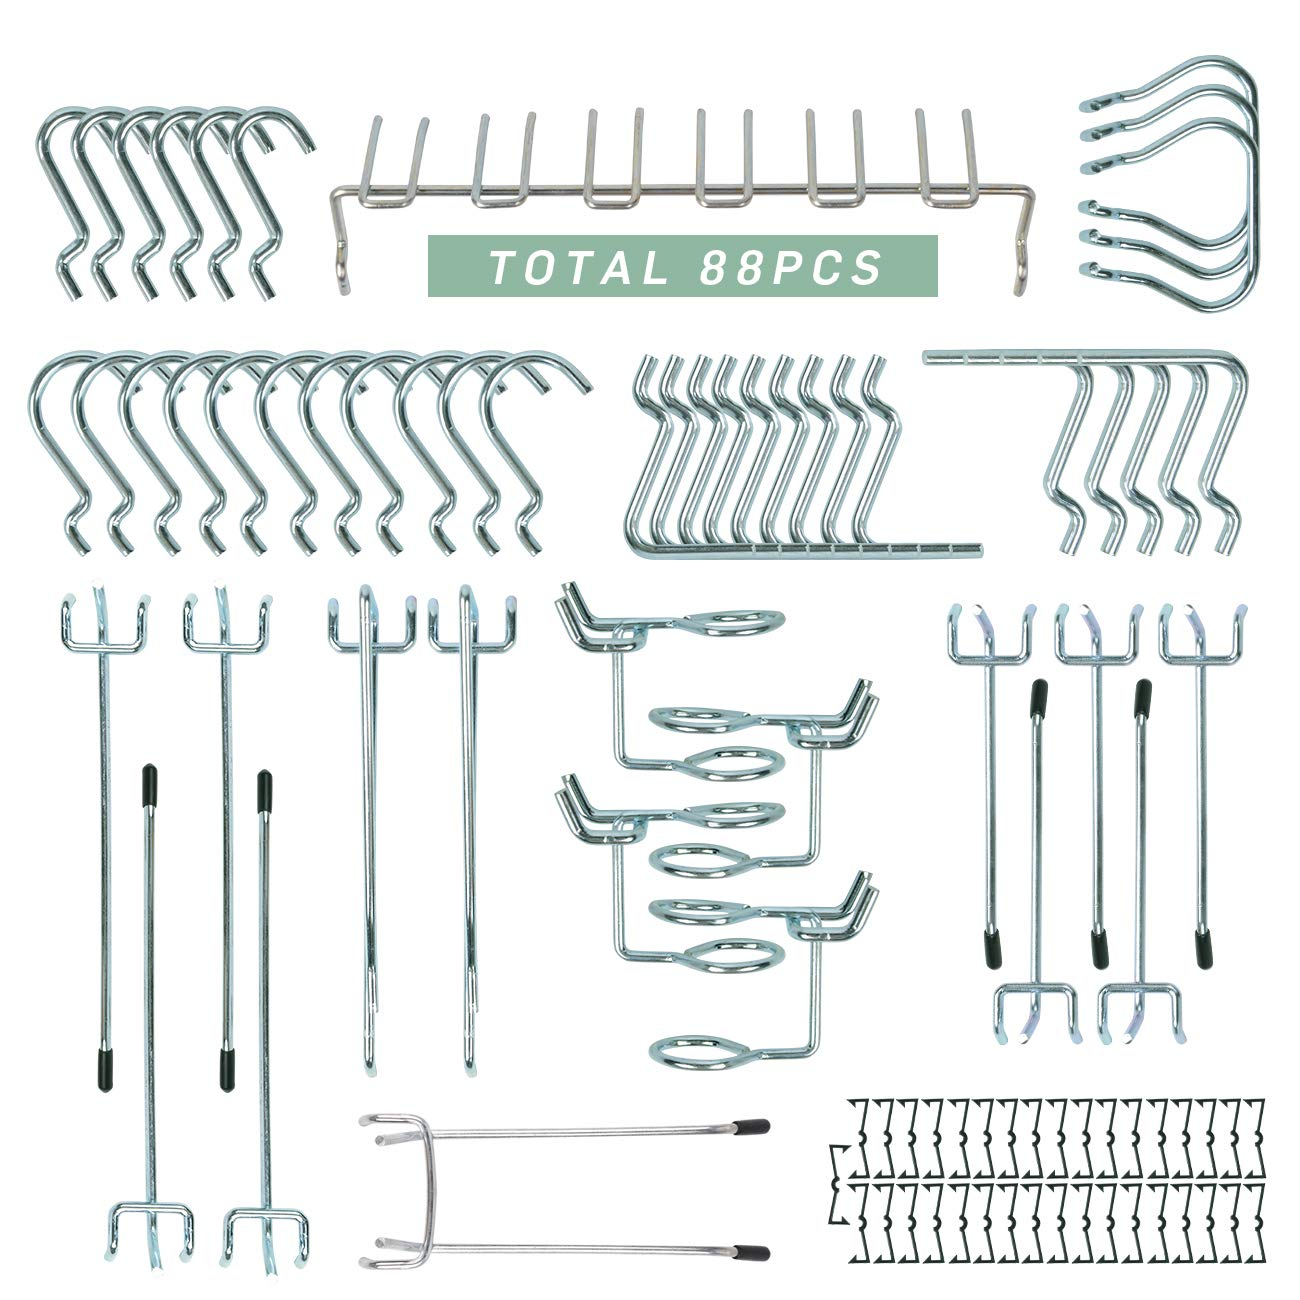 88 Pcs Pegboard Metal Hooks Assortment Peg Board Organization Anti Rust Shop Tools Display Garage Warehouse Factory Storage